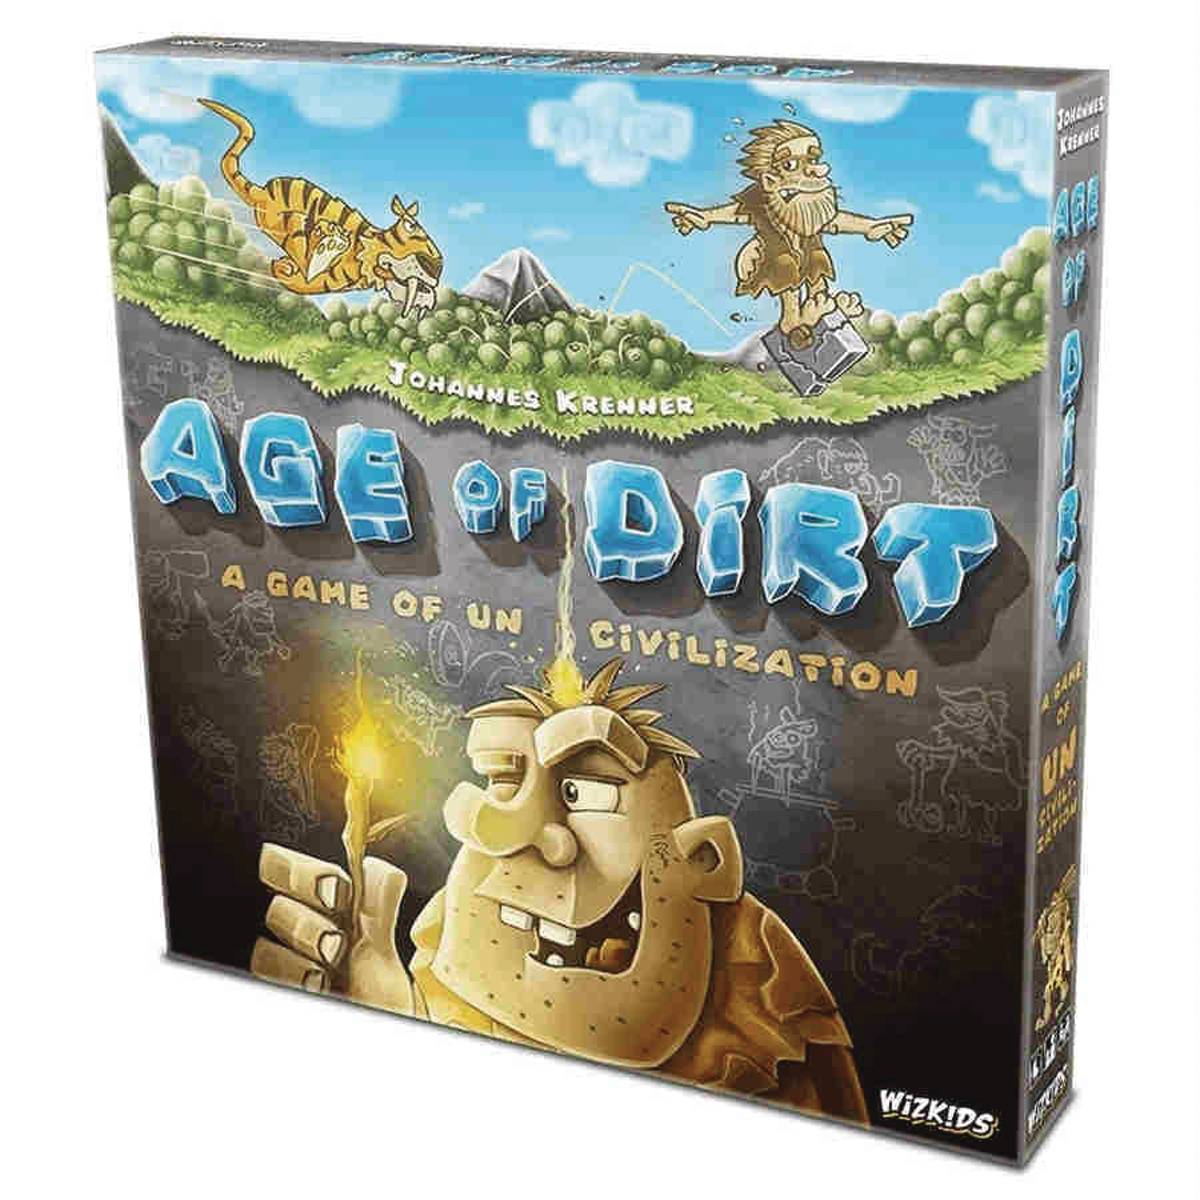 AGE OF DIRT BOARD GAME (C: 0-1-2)